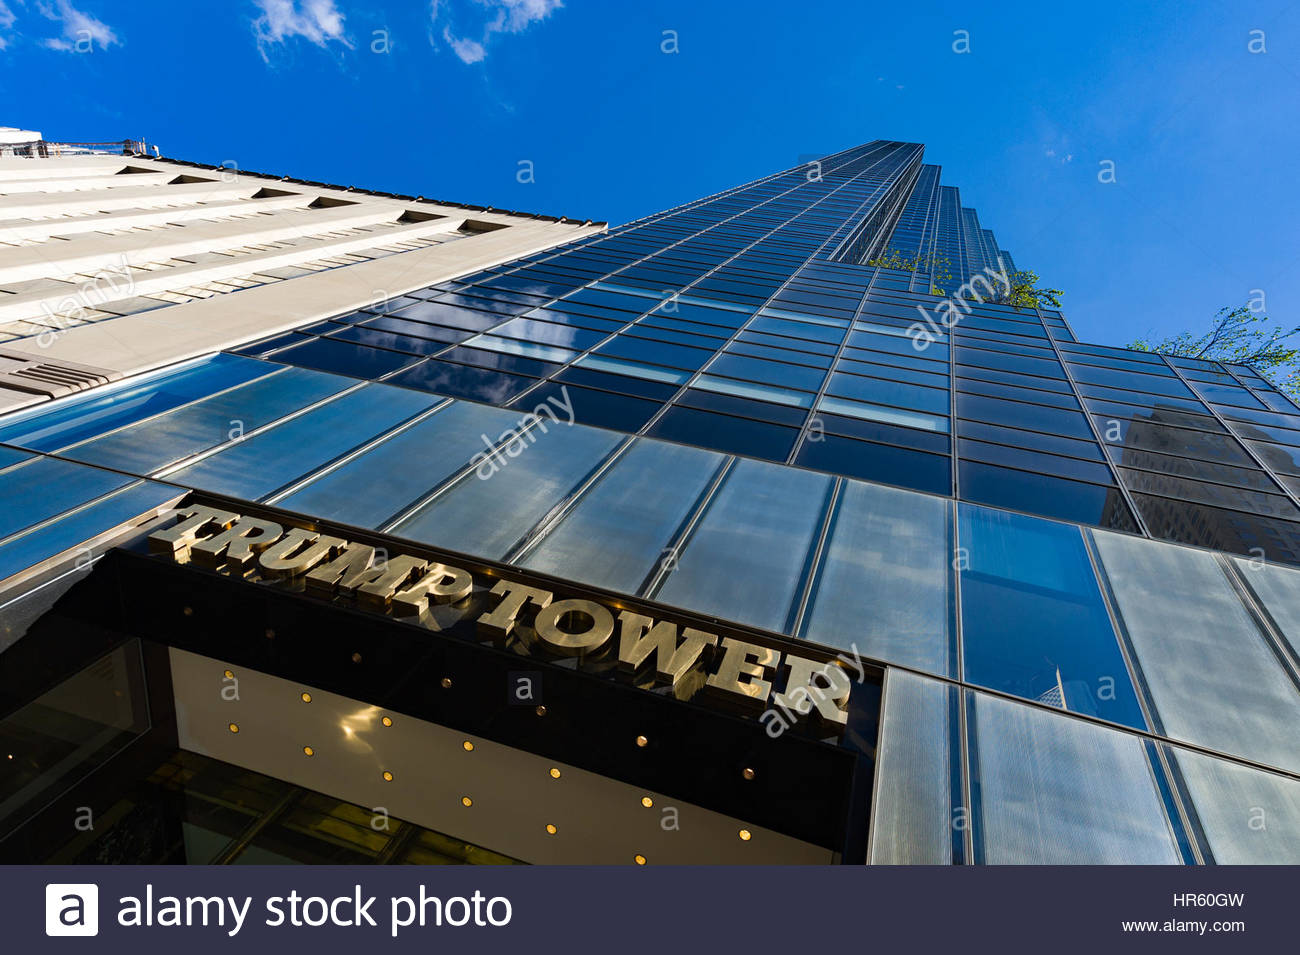 Trump Tower on Fifth Avenue, New York City, USA - Stock Image